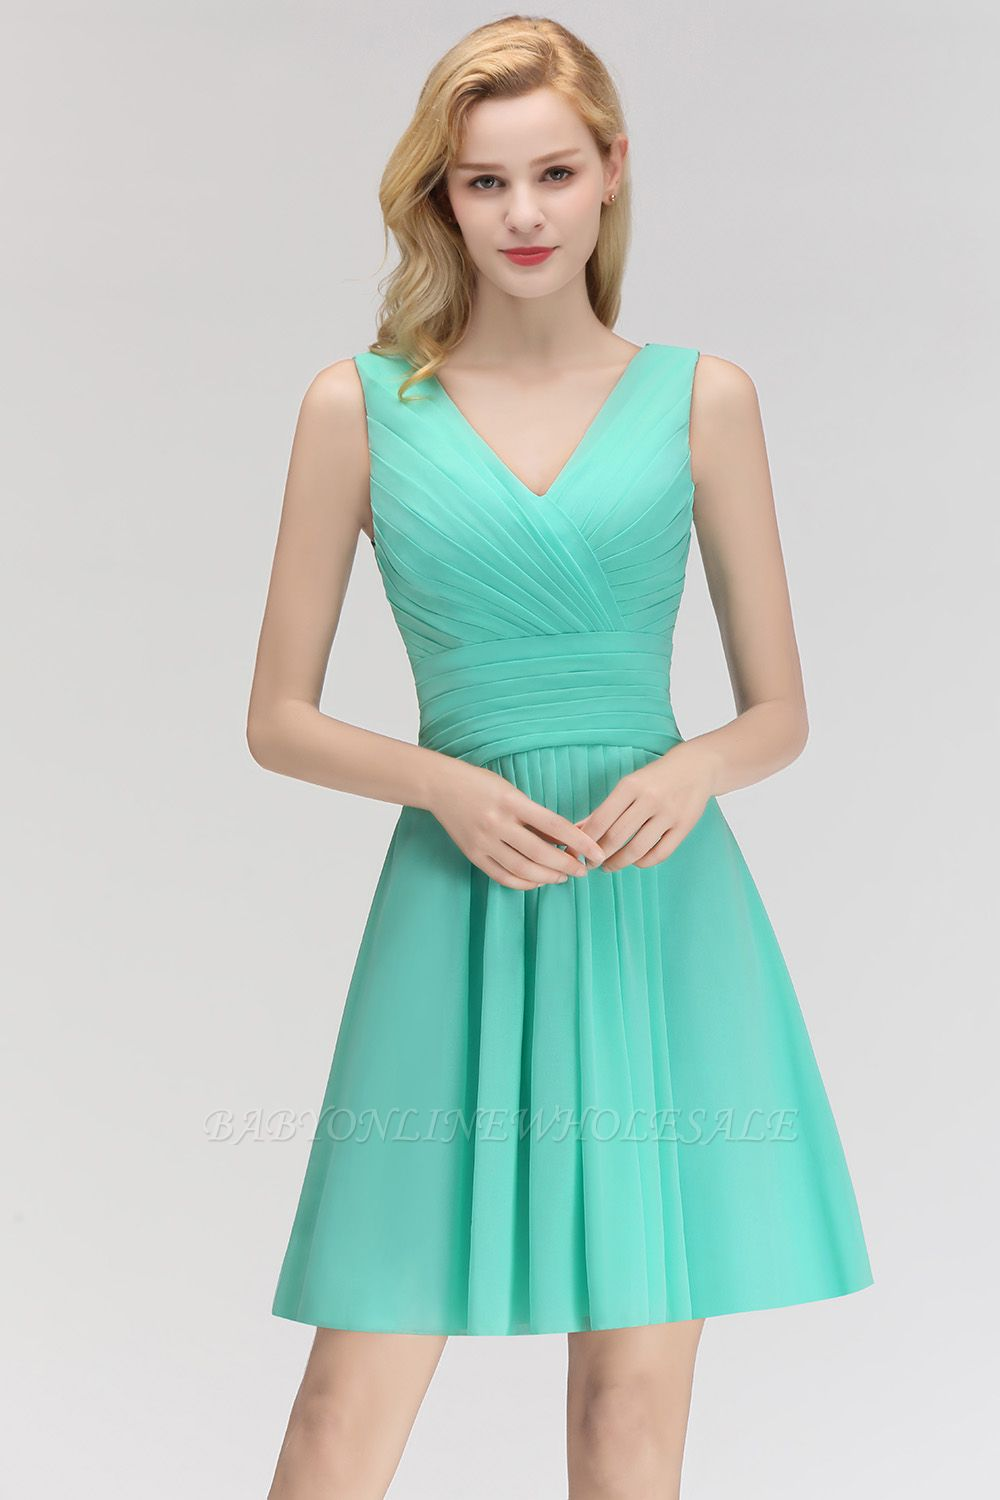 Mabel | Modest Ruffles Sexy V-Neck Sleeveless Short Bridesmaid Dress